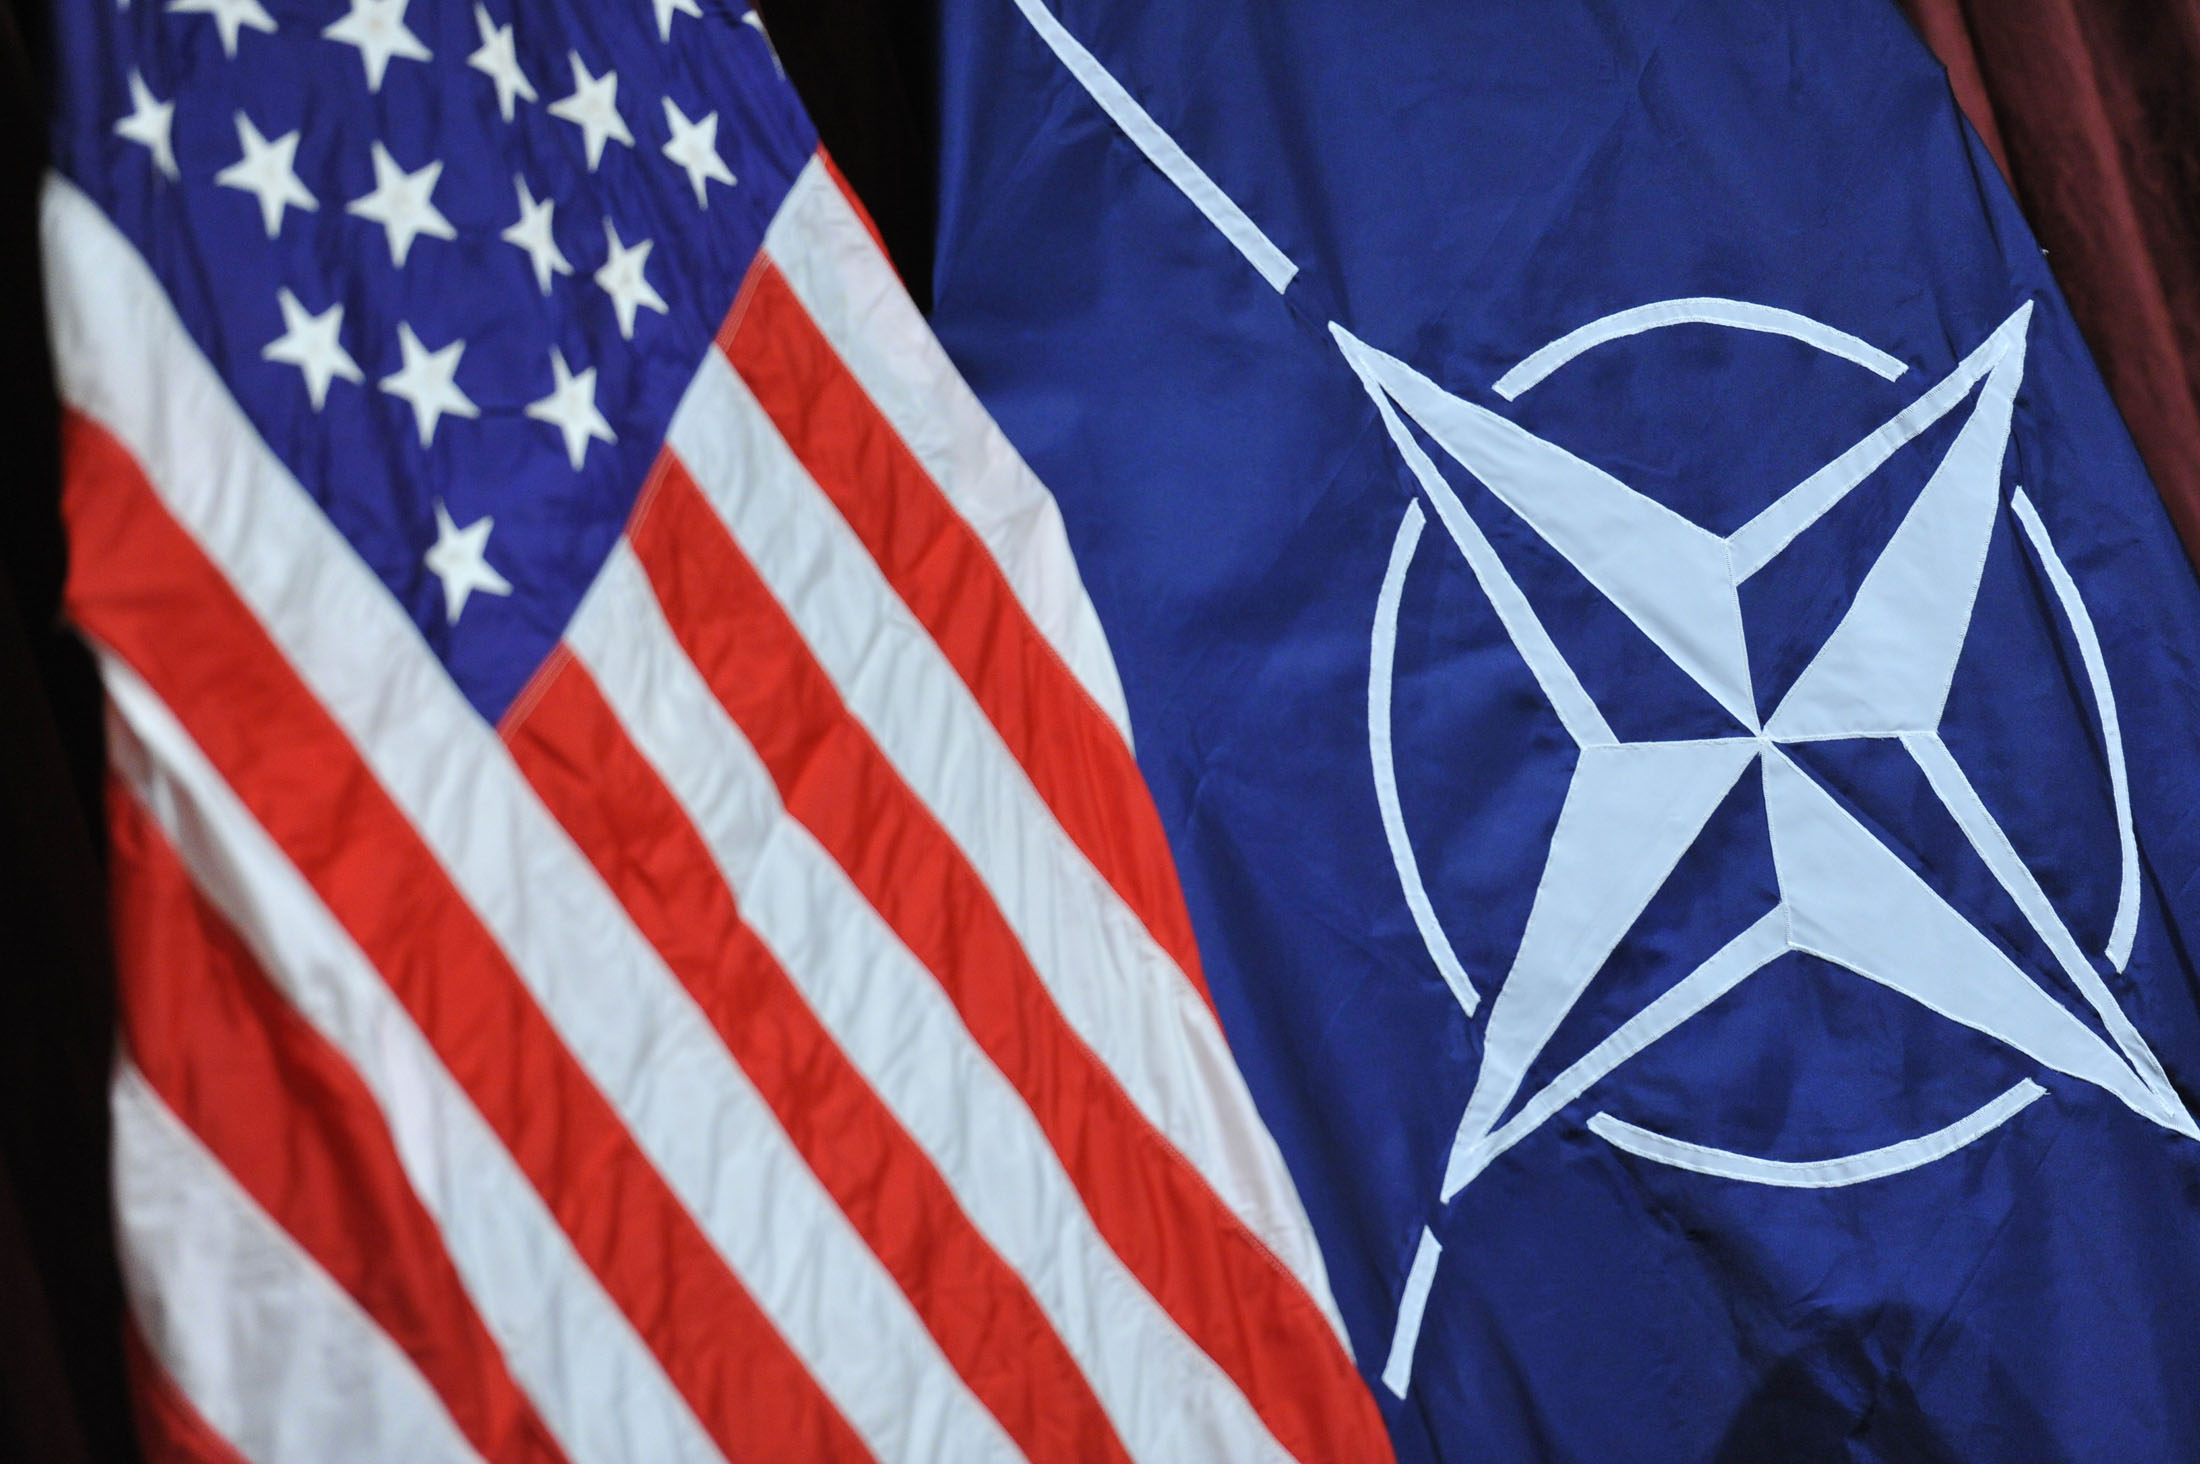 Voices from Syria Refute Western Propaganda: US-NATO Supported Terrorists Involved in Countless Atrocities